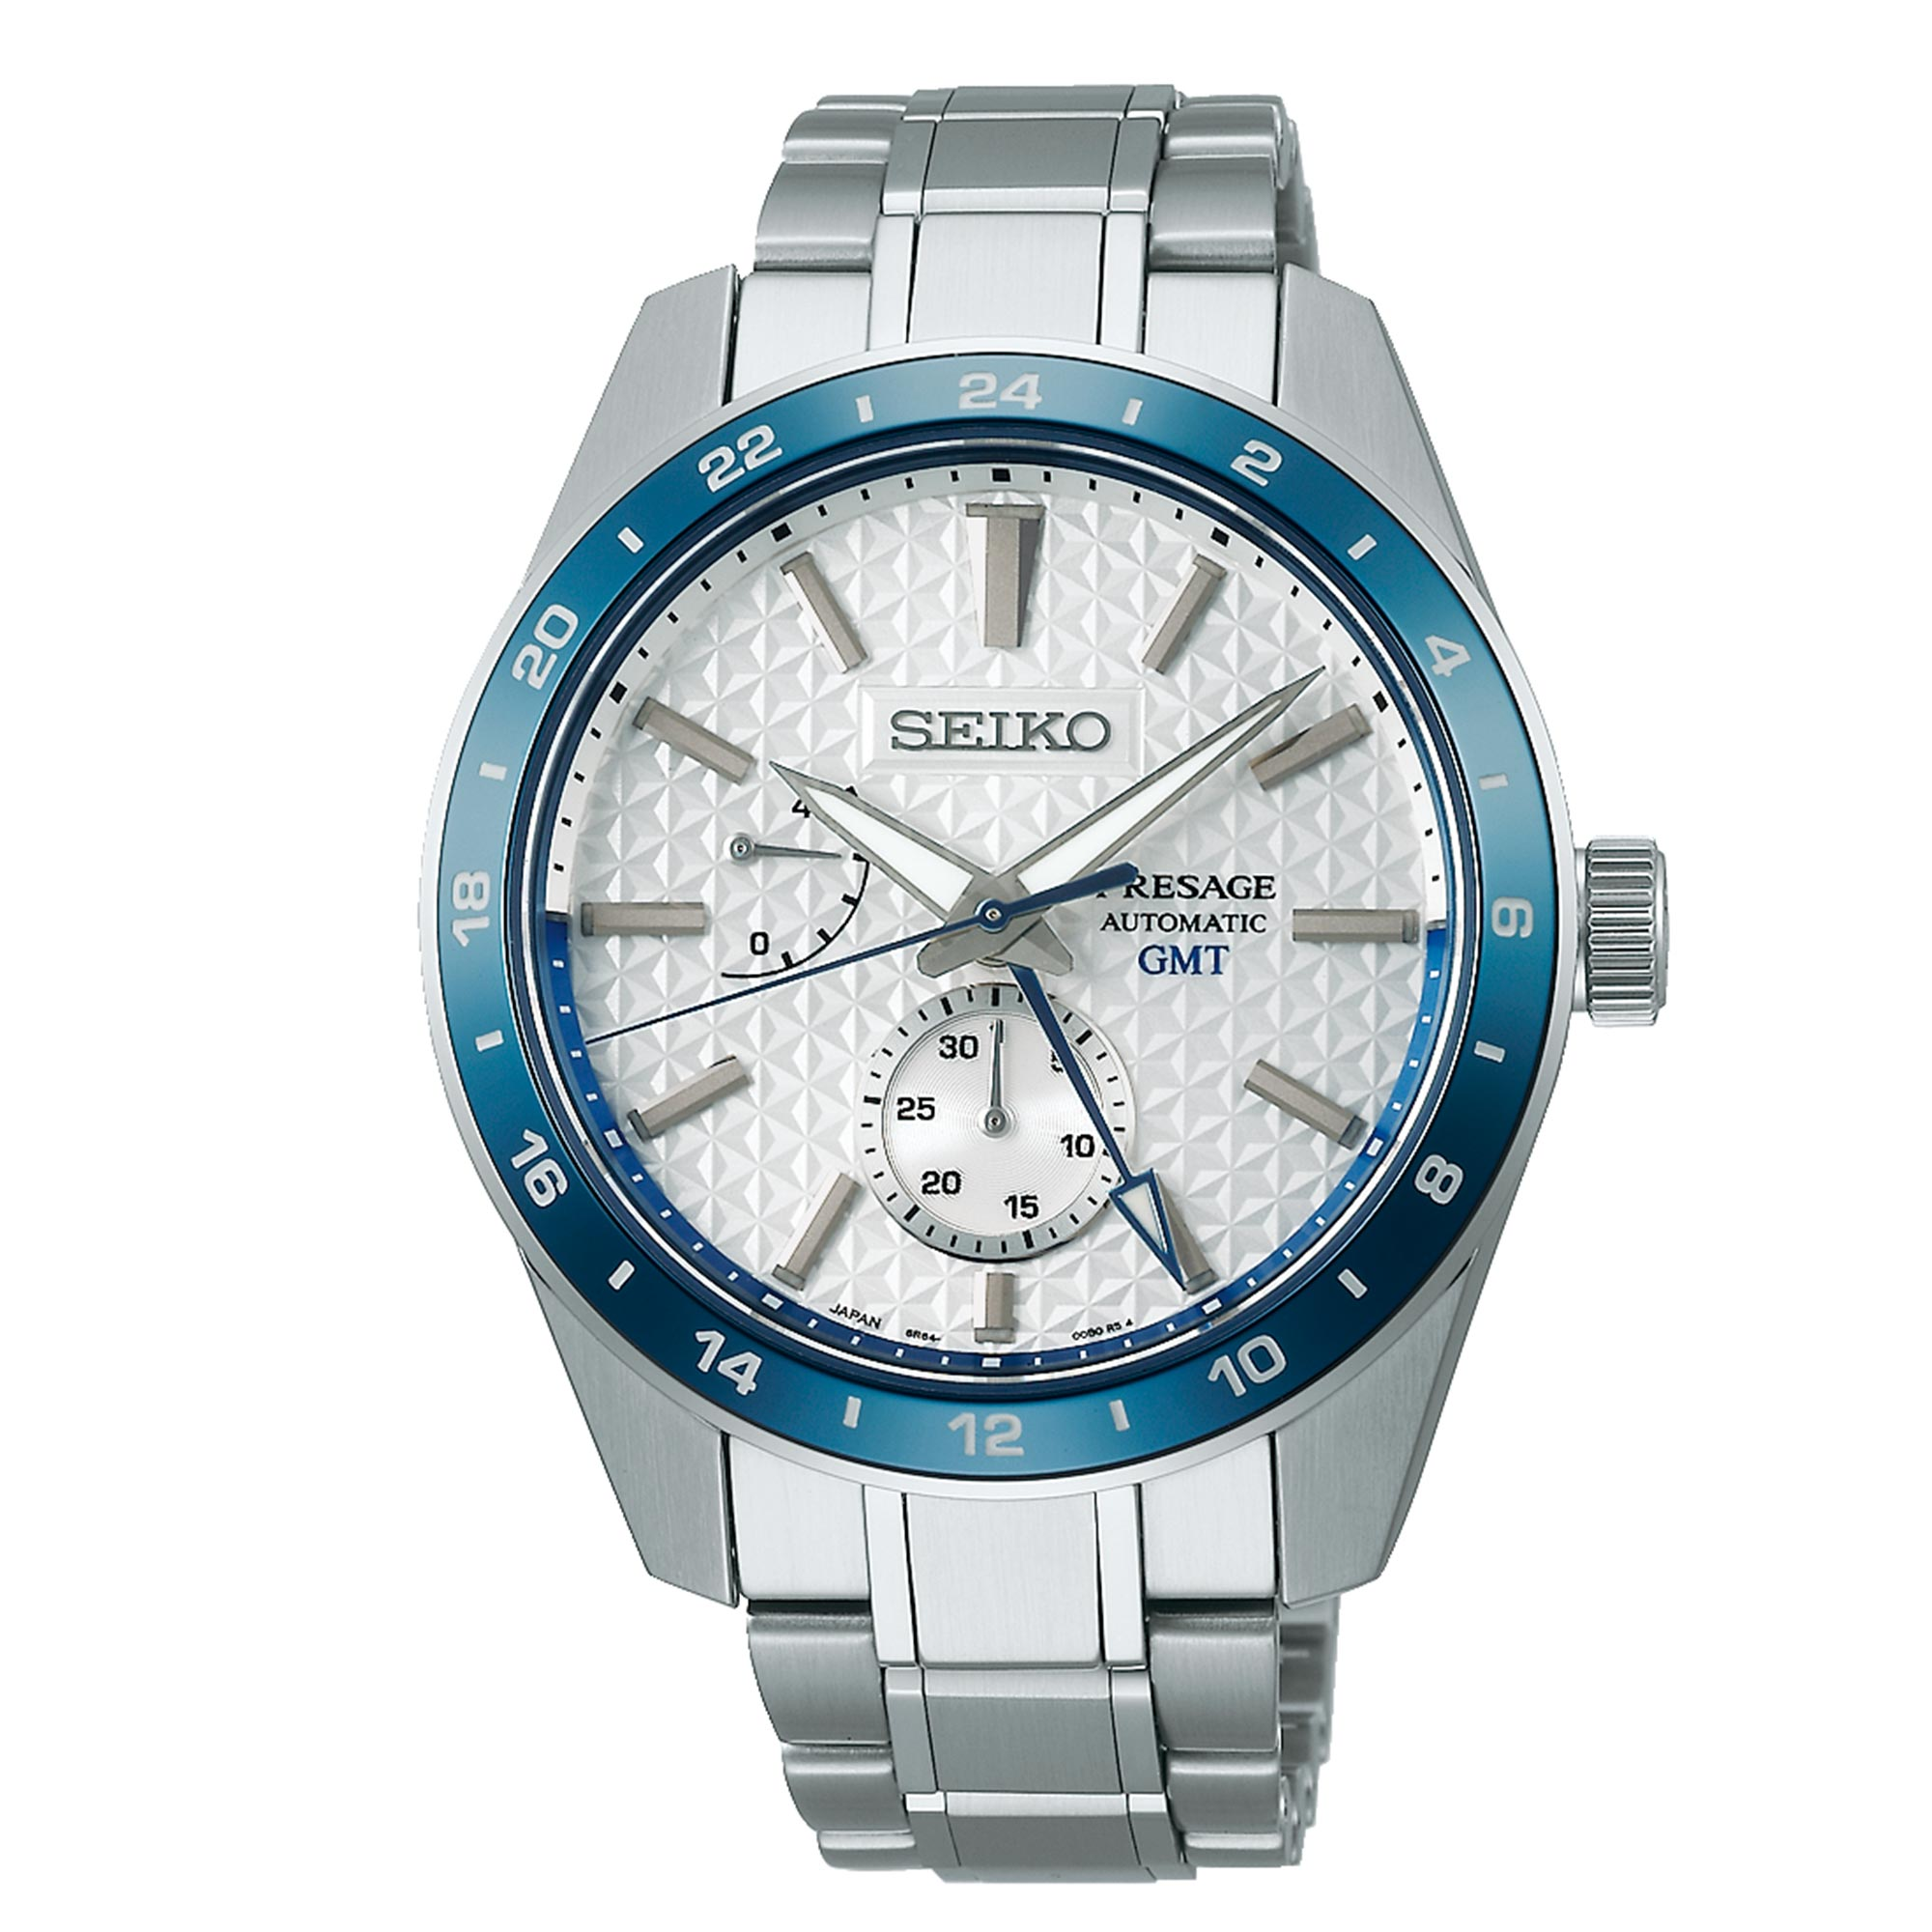 Seiko Presage Sharp Edged Series 140th Anniversary Limited Edition Automatic Movement White Dial Stainless Steel Bracelet SPB223J1